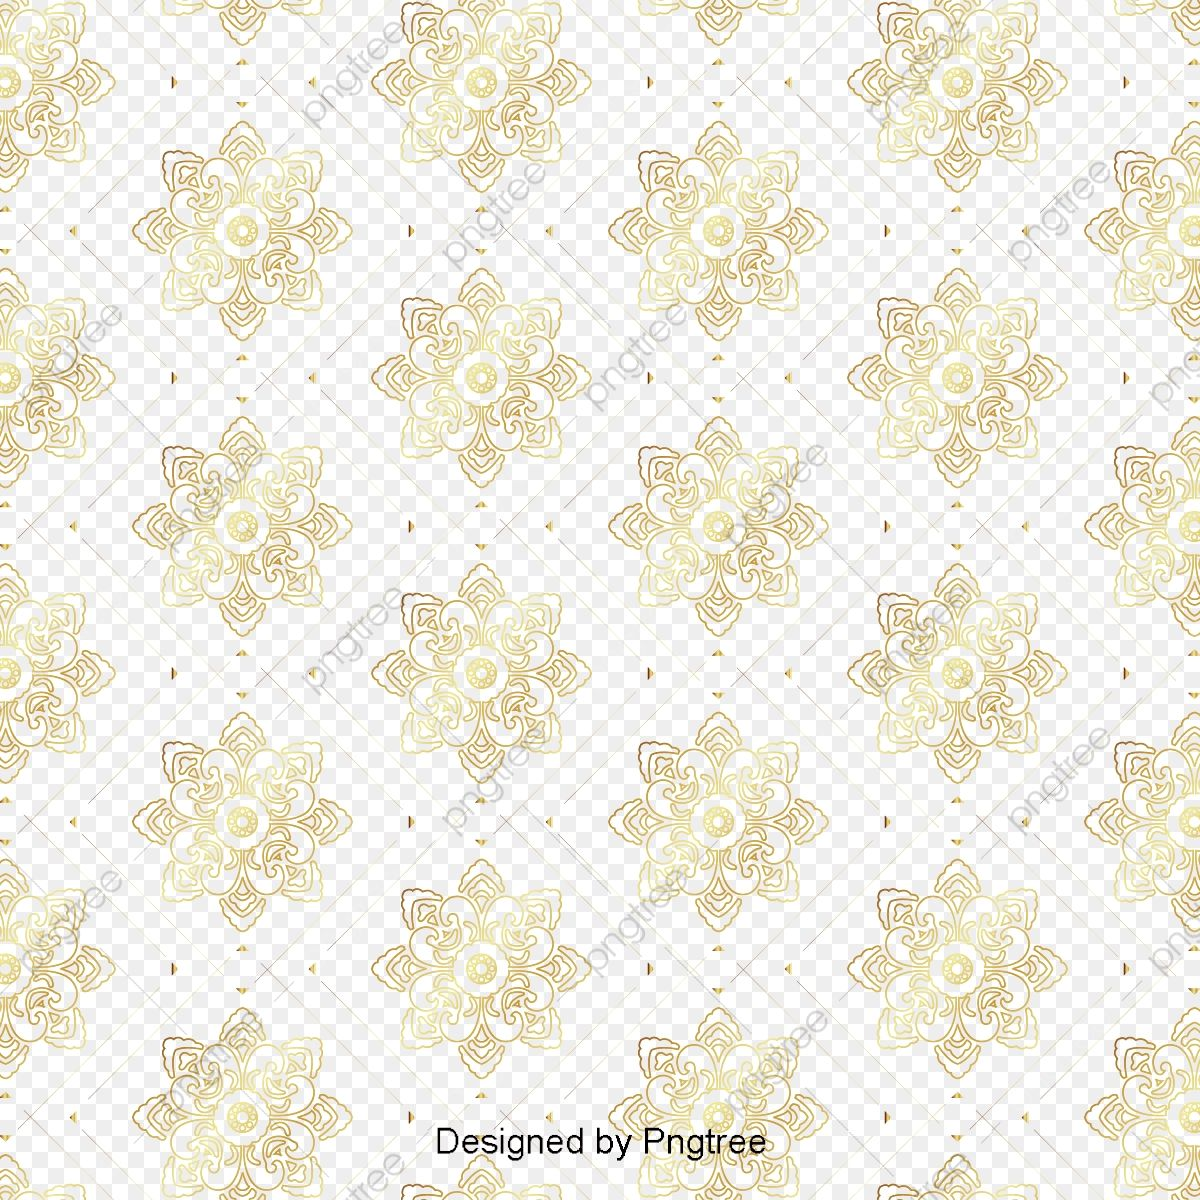 Golden Thai Pattern Background Material Golden Thailand Pattern Png And Vector With Transparent Background For Free Download Thai Pattern Background Patterns Transparent Background